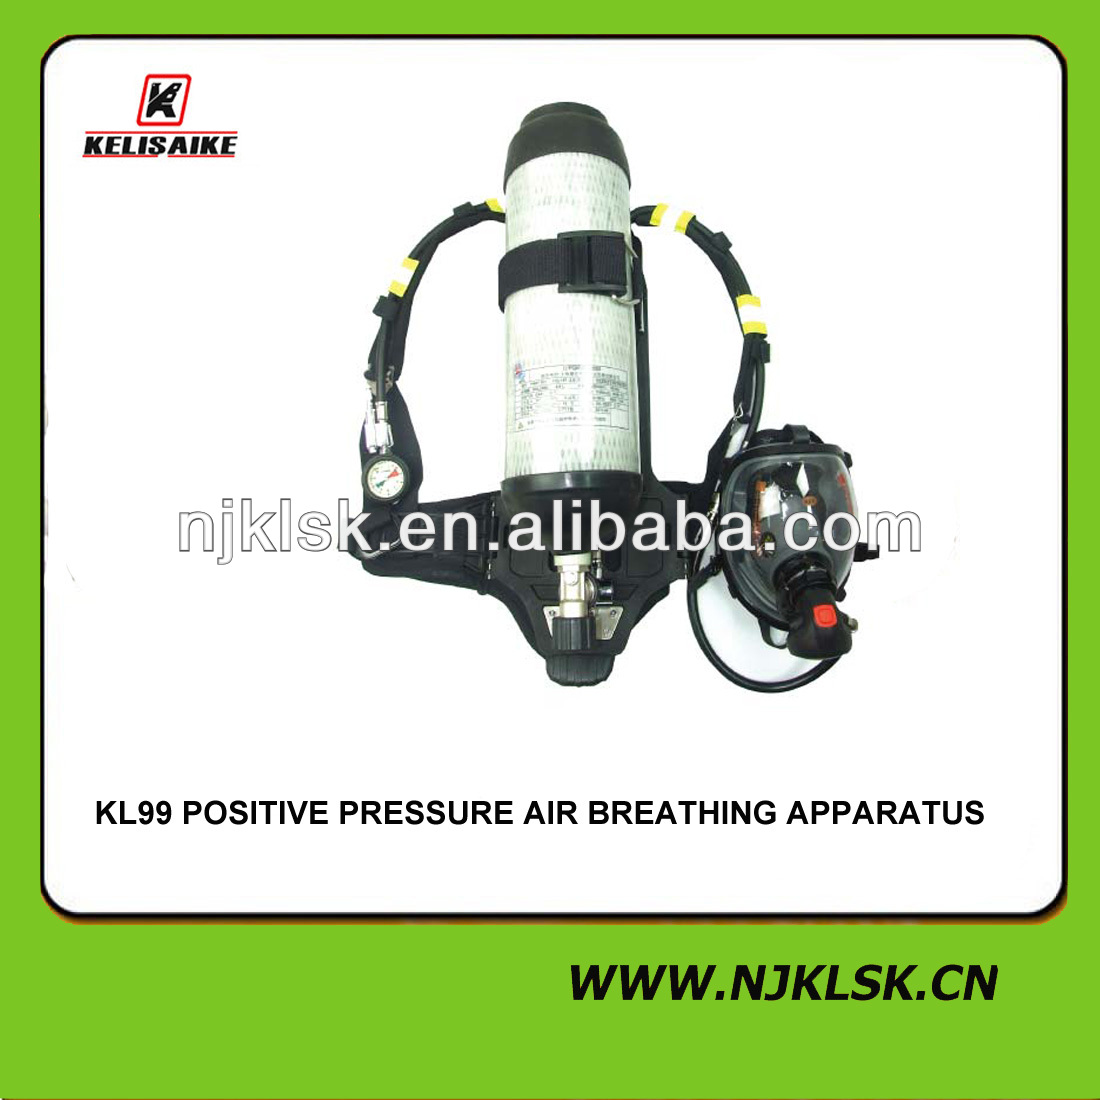 solid reliability full firefighter mask compressed air breathing kit